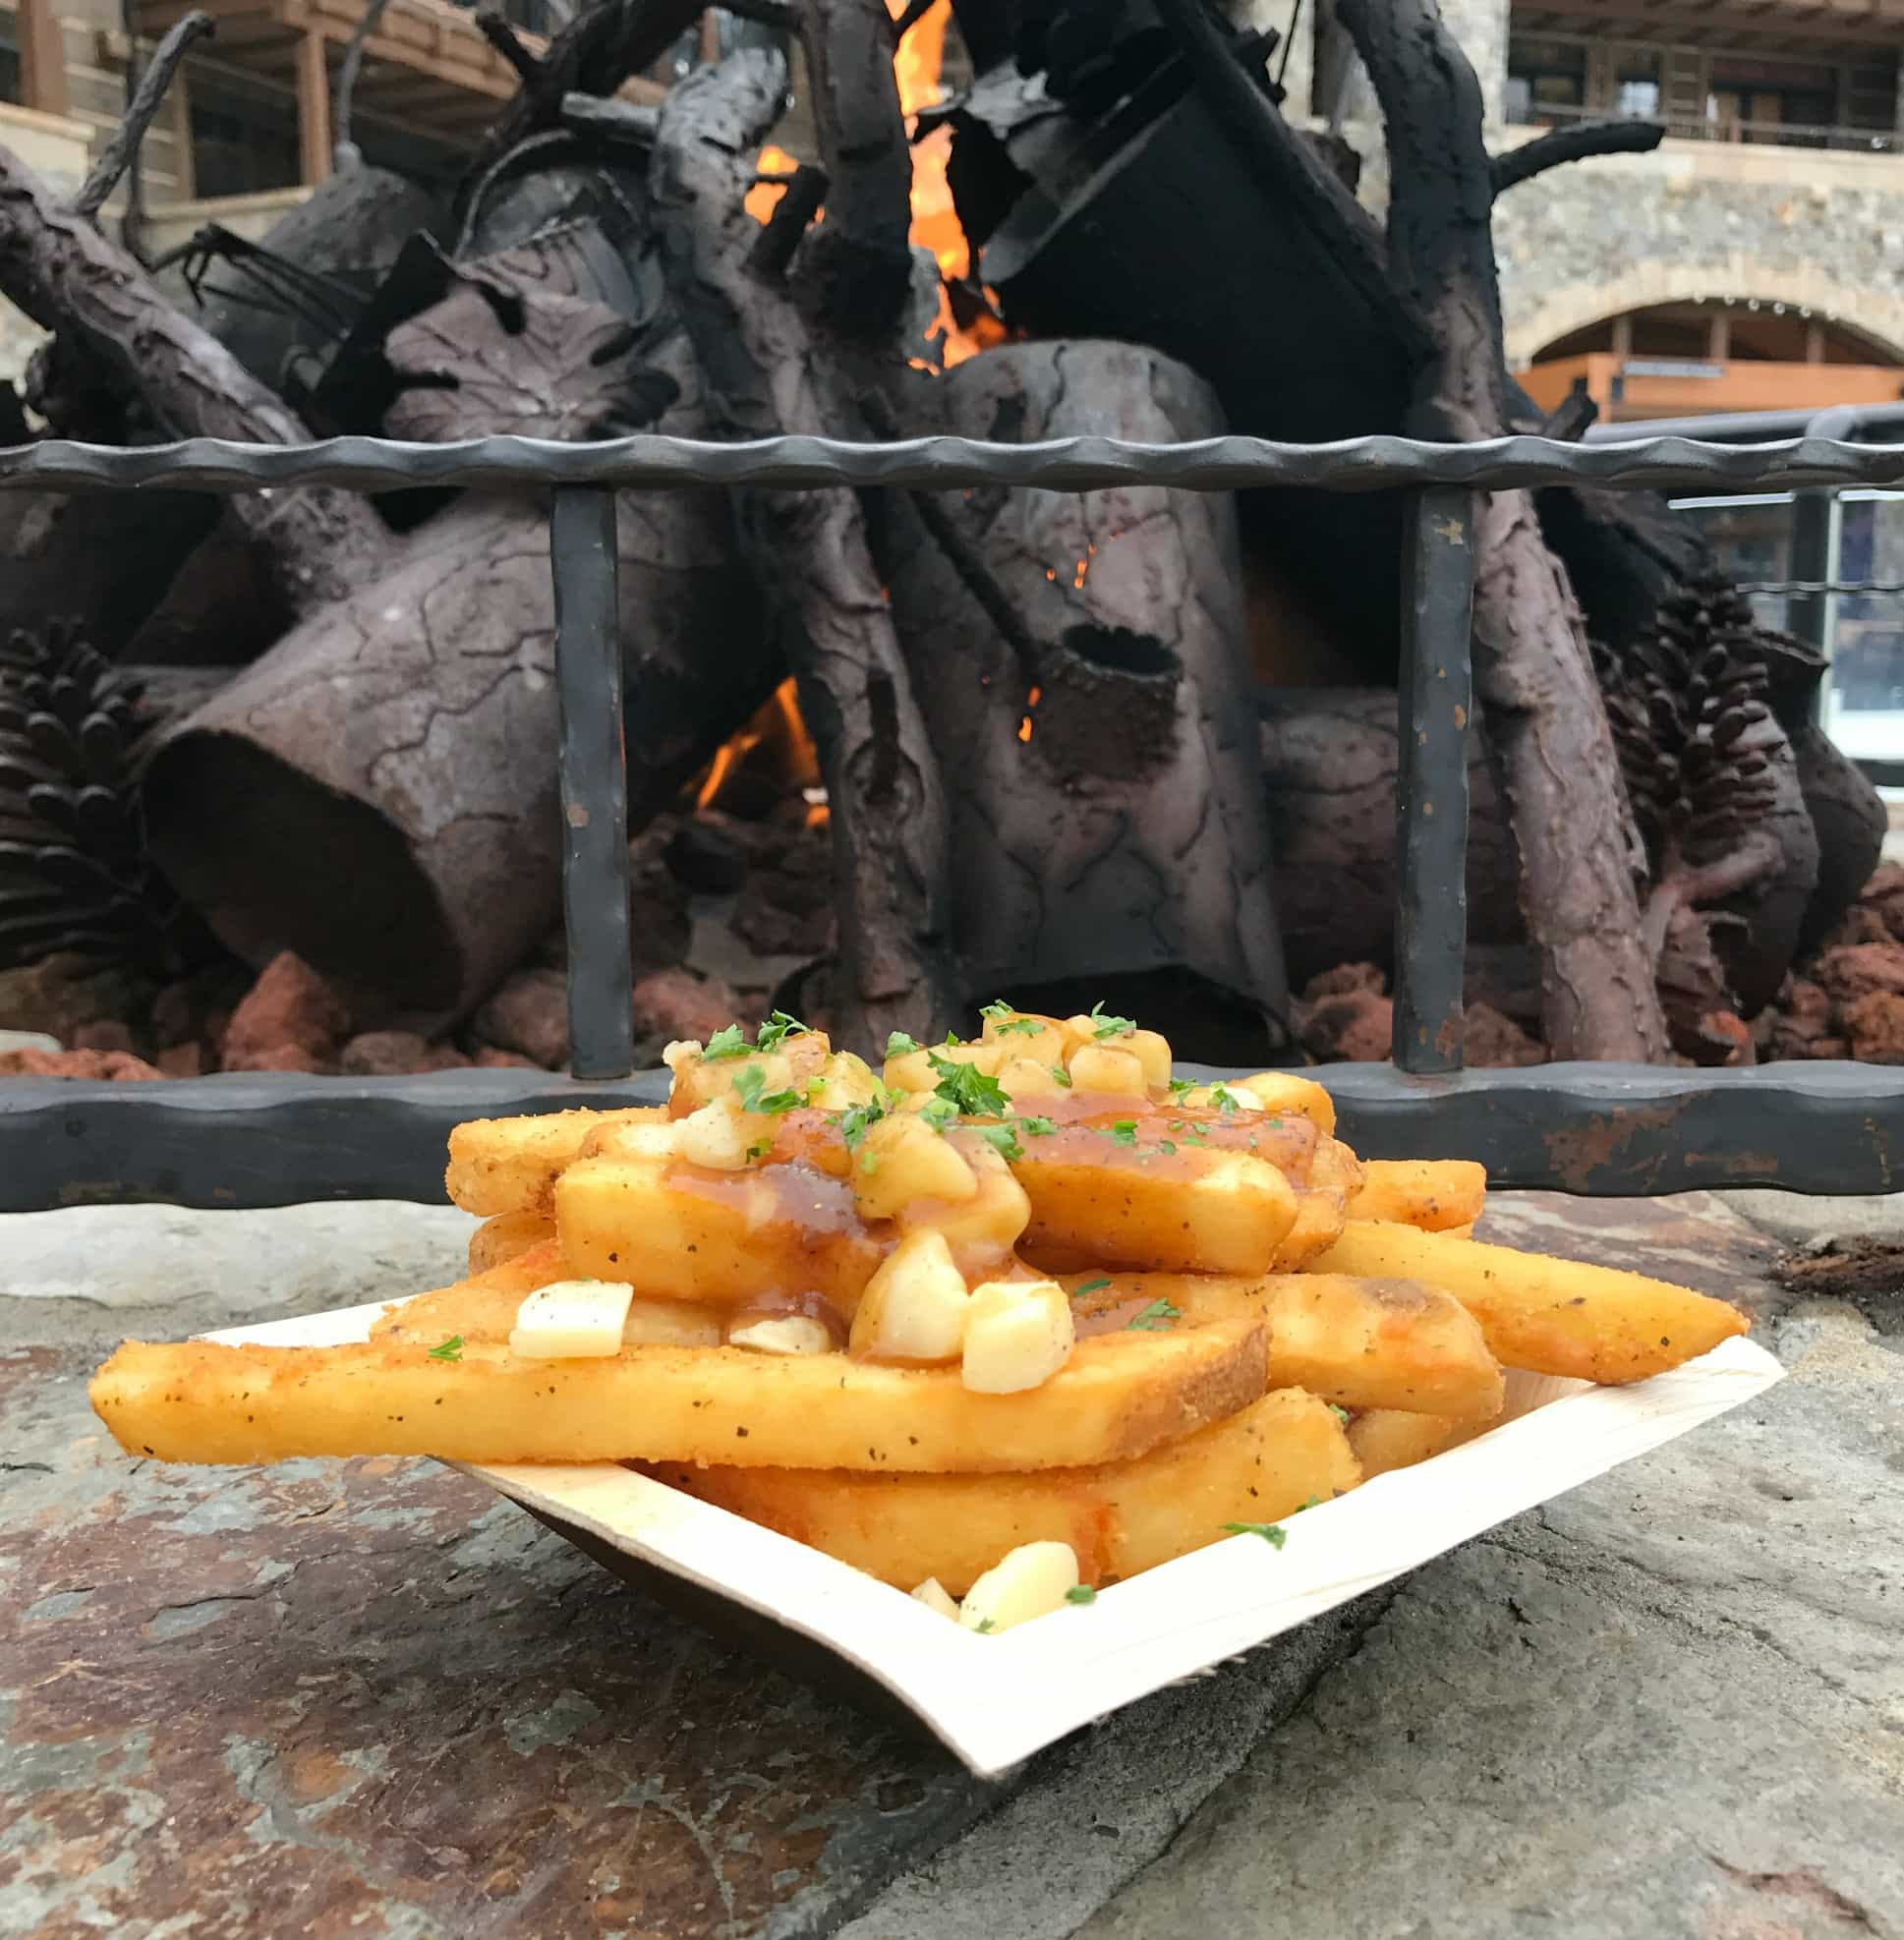 Poutine makes a tasty apres ski treat from the Frites stand in the Village at Northstar with kids